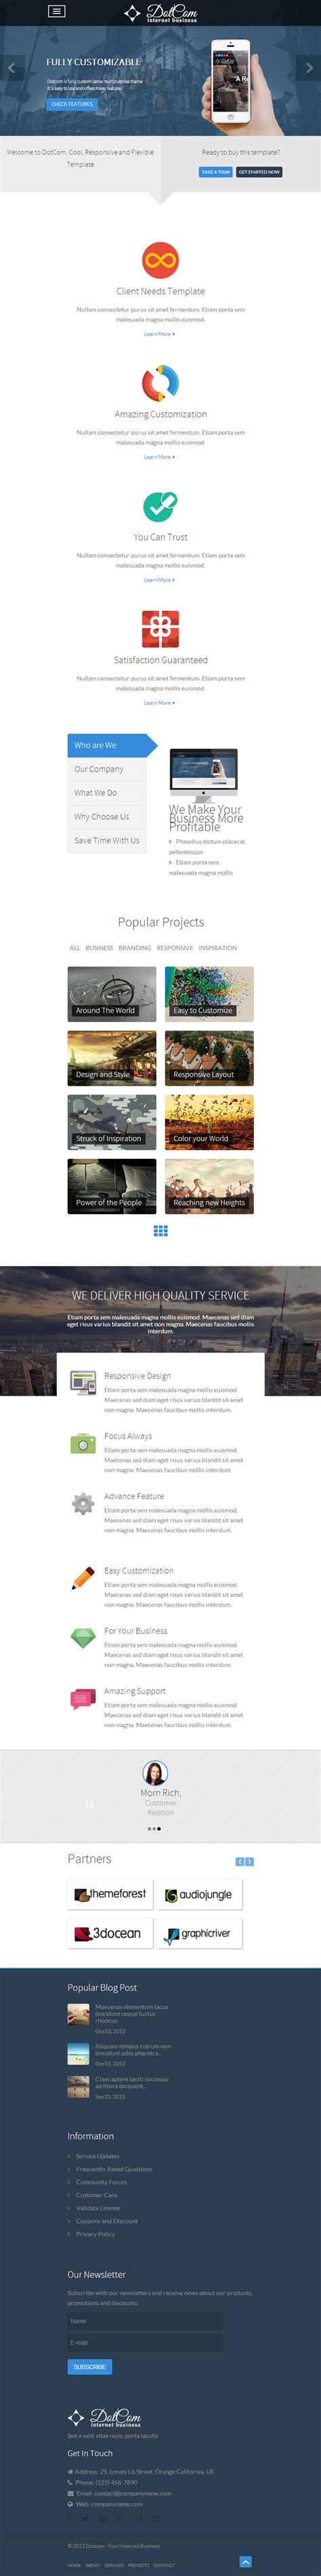 themeforest joomla dotcom responsive corporate joomla template